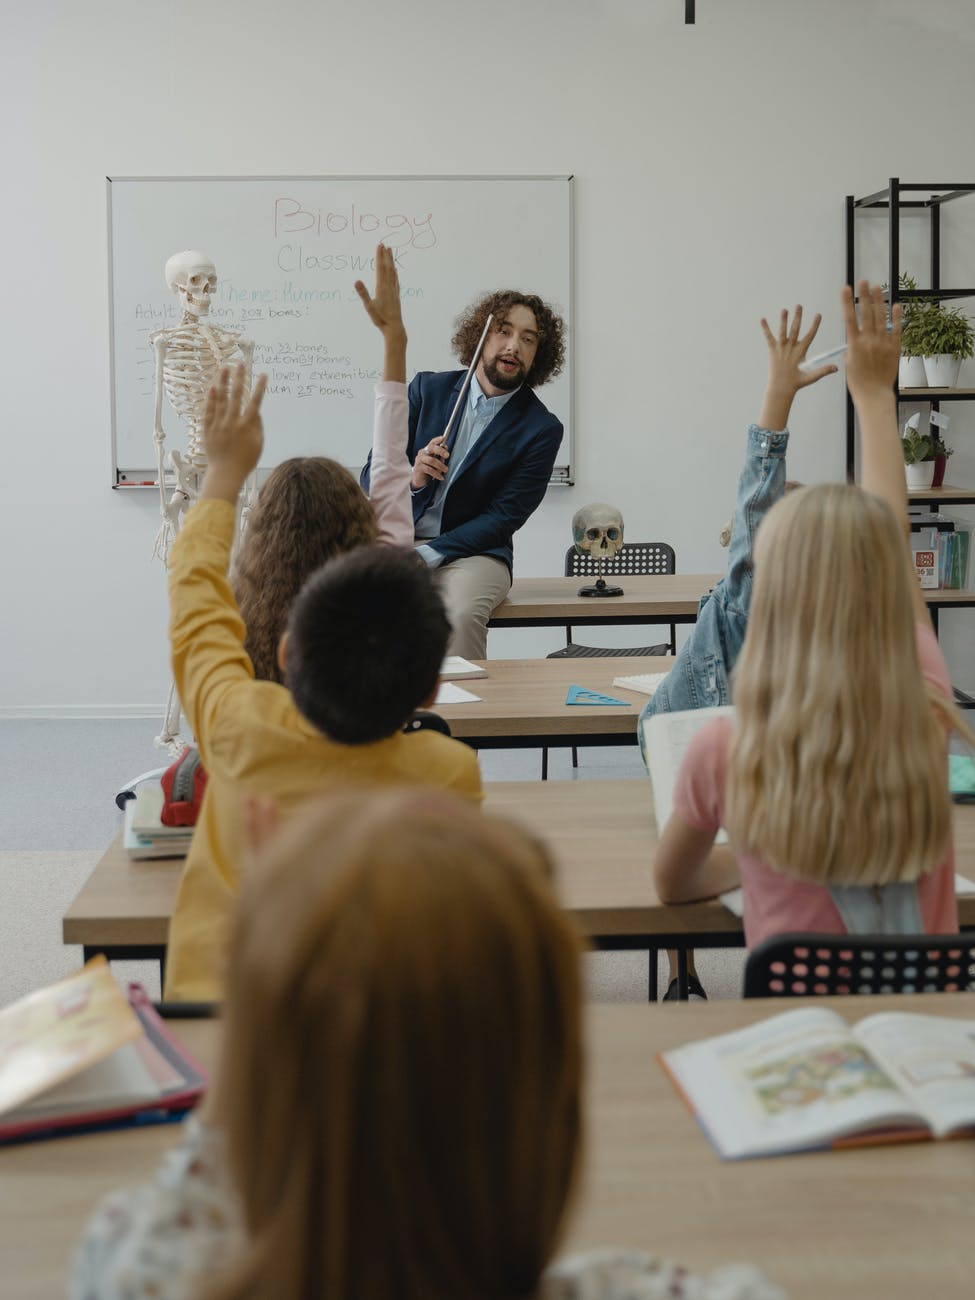 children inside a room participating in class